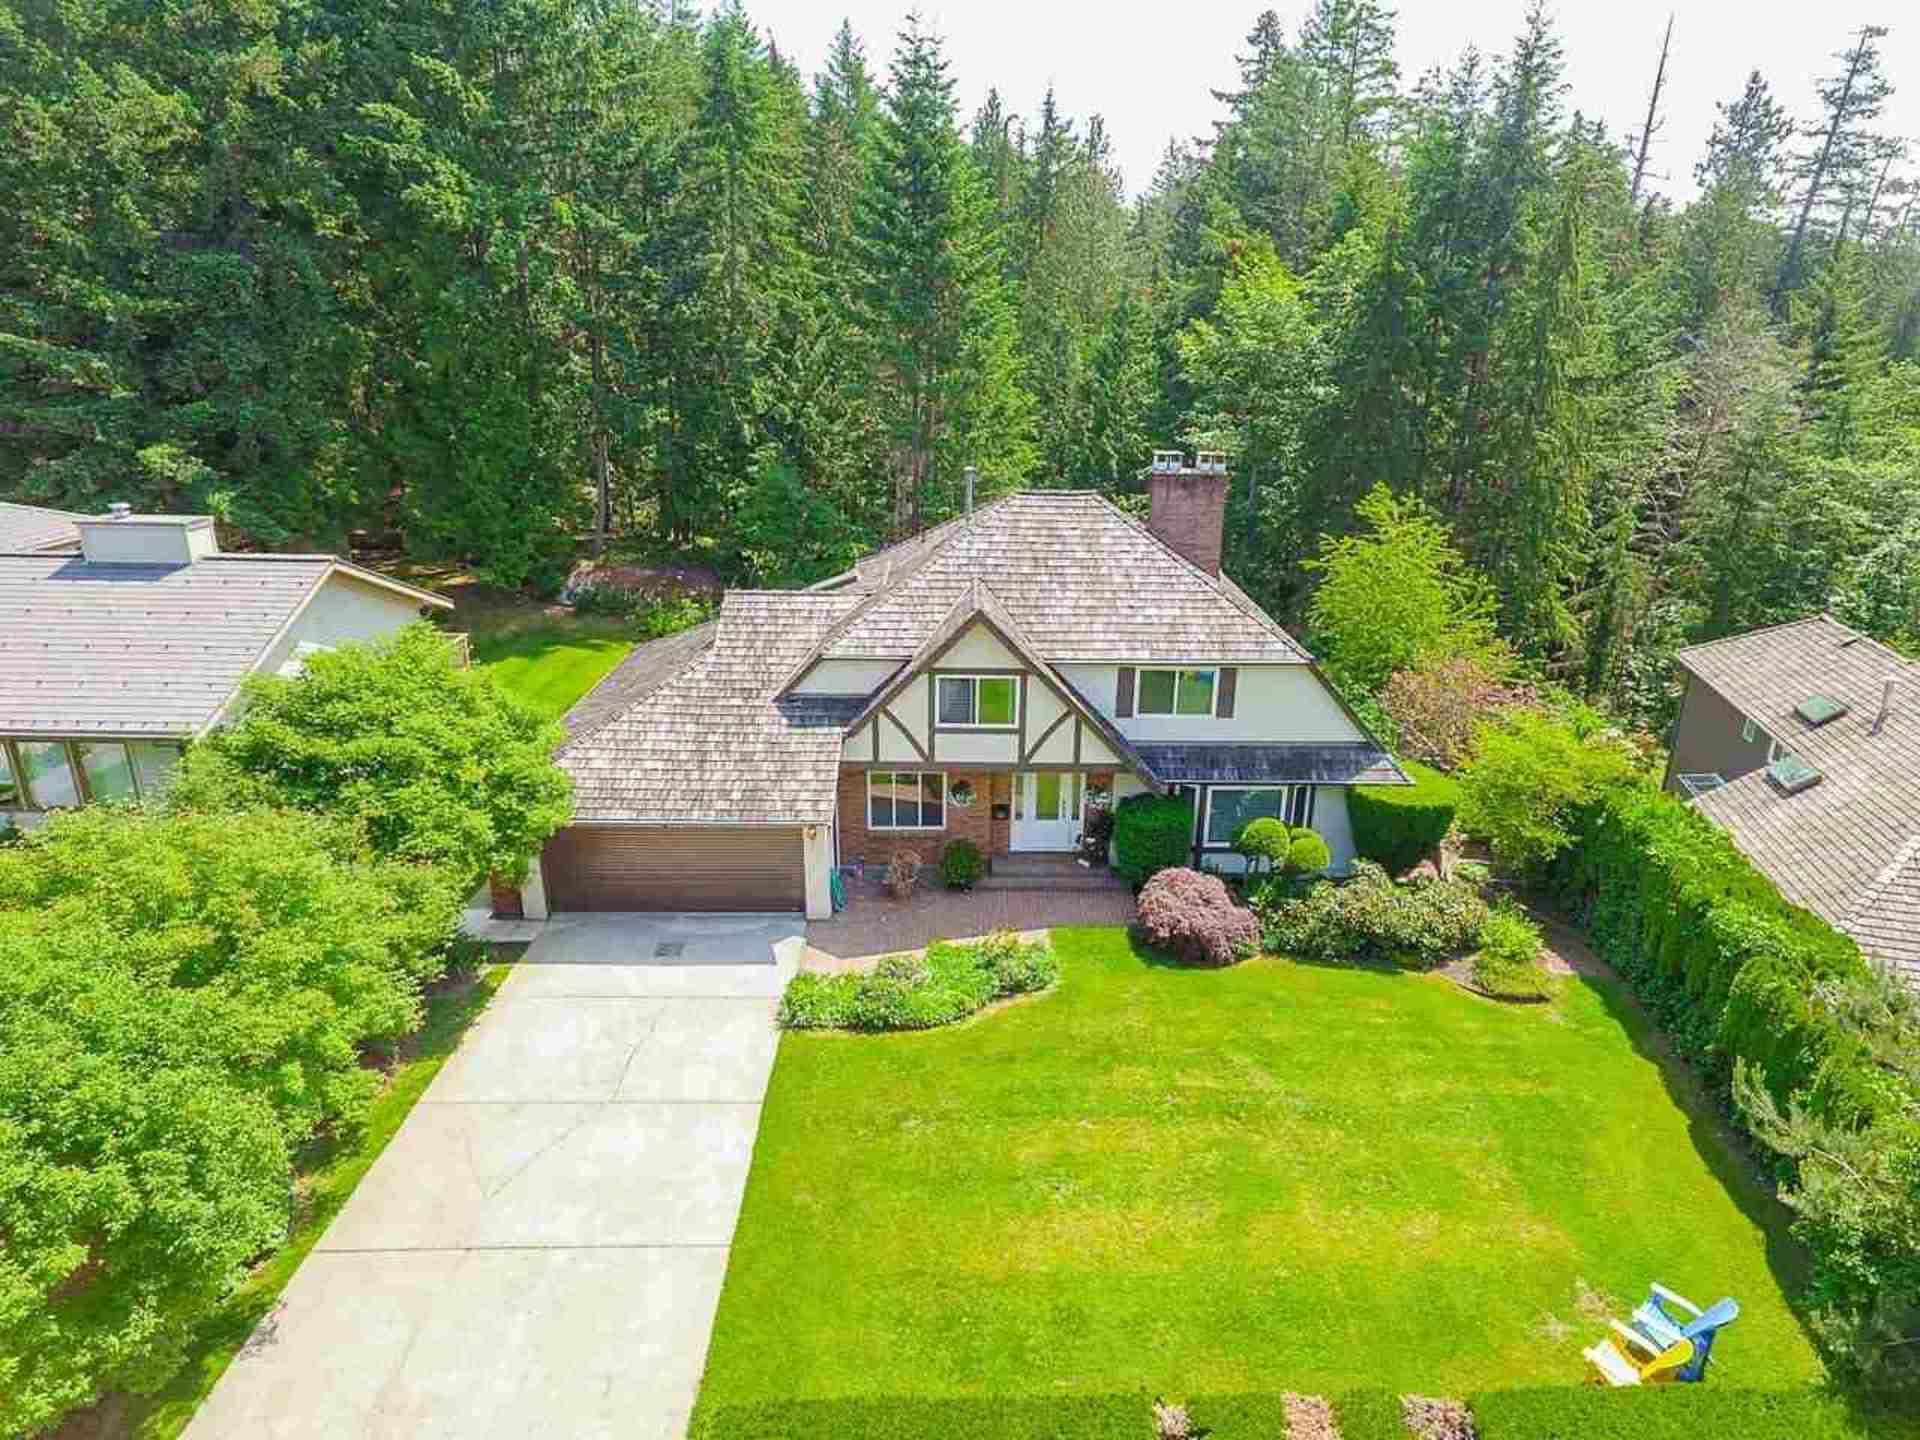 4734-woodgreen-drive-cypress-park-estates-west-vancouver-13 at 4734 Woodgreen Drive, Cypress Park Estates, West Vancouver